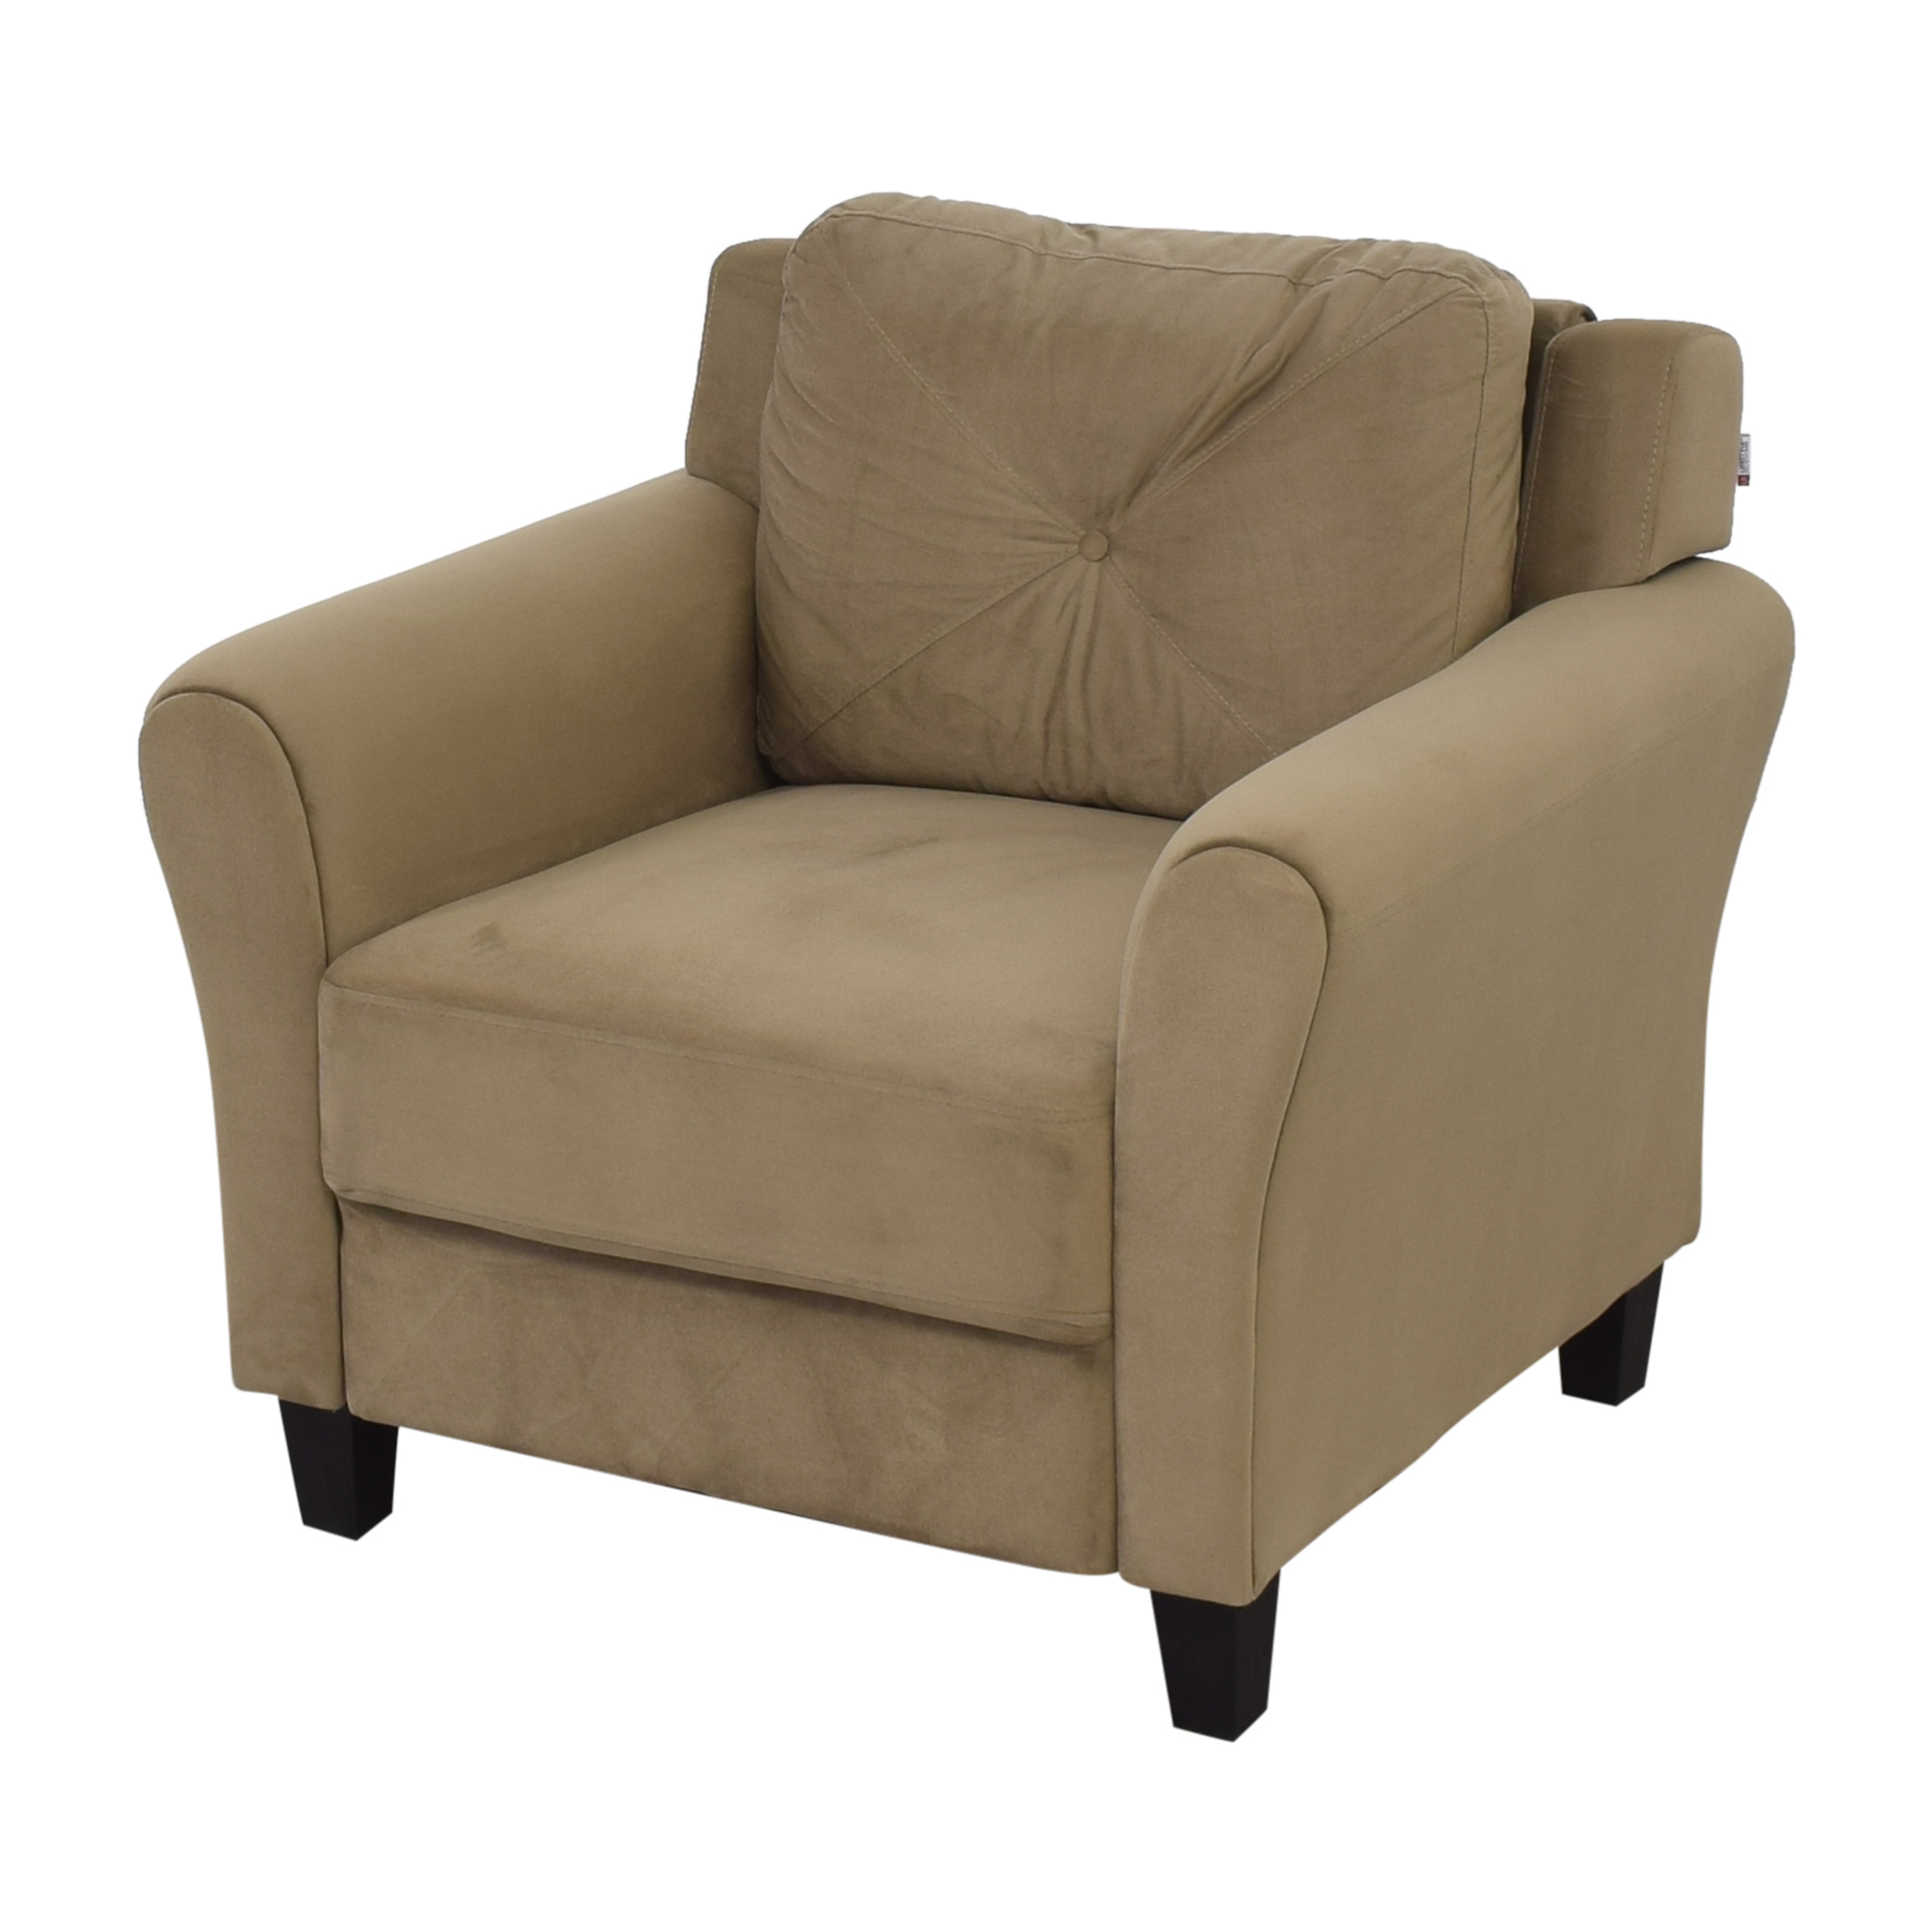 Lifestyle Solutions Lifestyle Solutions Harvard Chair discount